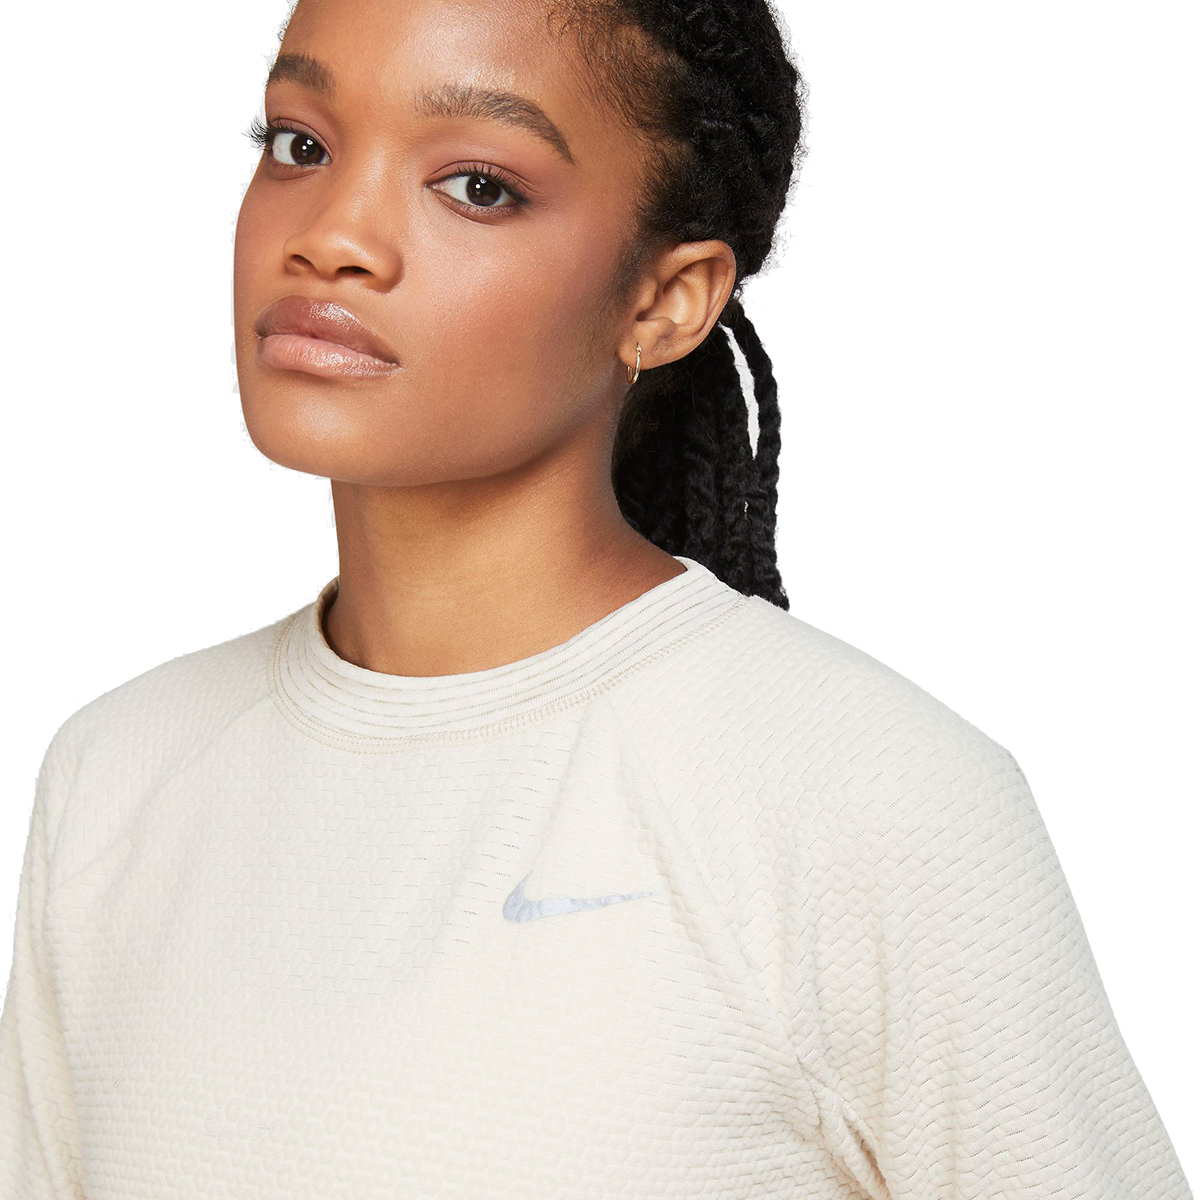 Women's Nike Sphere Crew Long Sleeve Shirt - Color: Oatmeal/Heather - Size: XS, Oatmeal/Heather, large, image 3